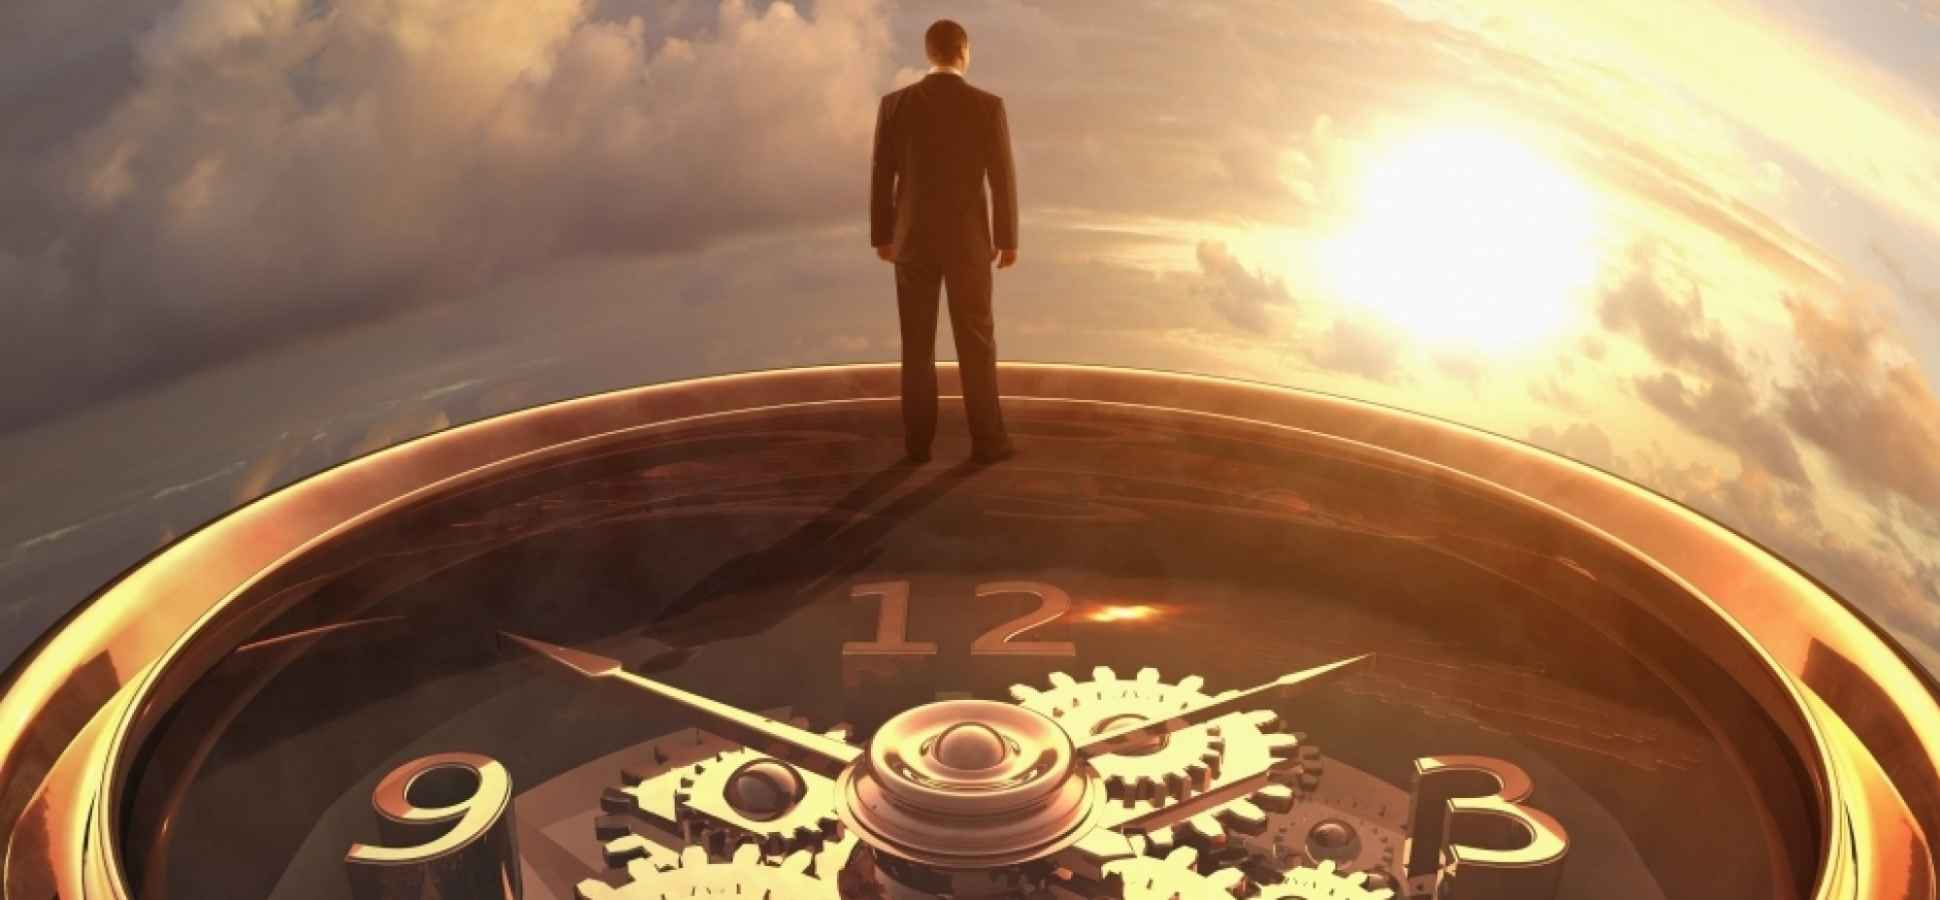 7 Secrets of the Most Productive People